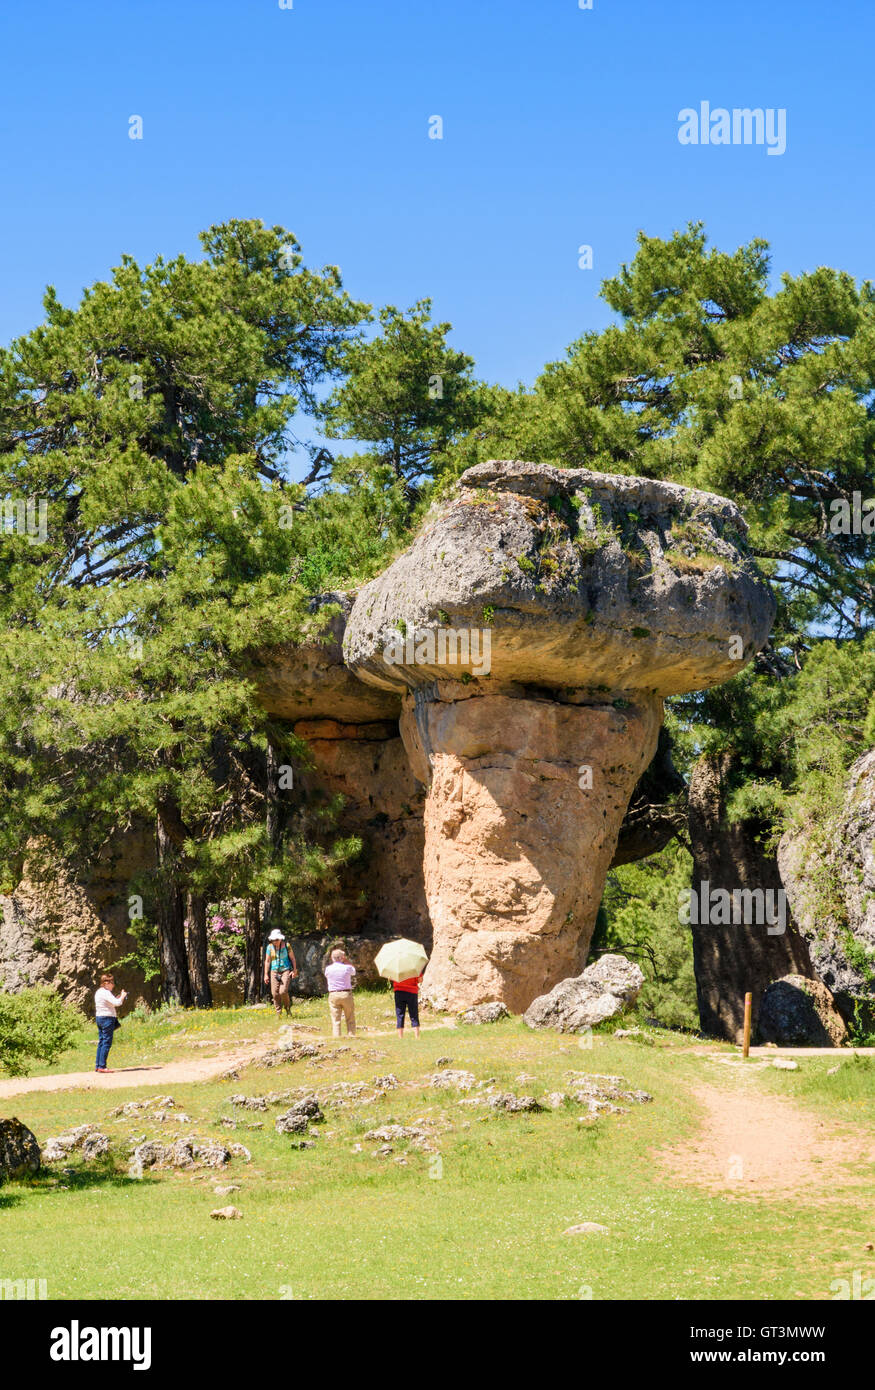 Tourists exploring rock formations shaped by erosion in La Ciudad Encantada near Cuenca, Spain - Stock Image